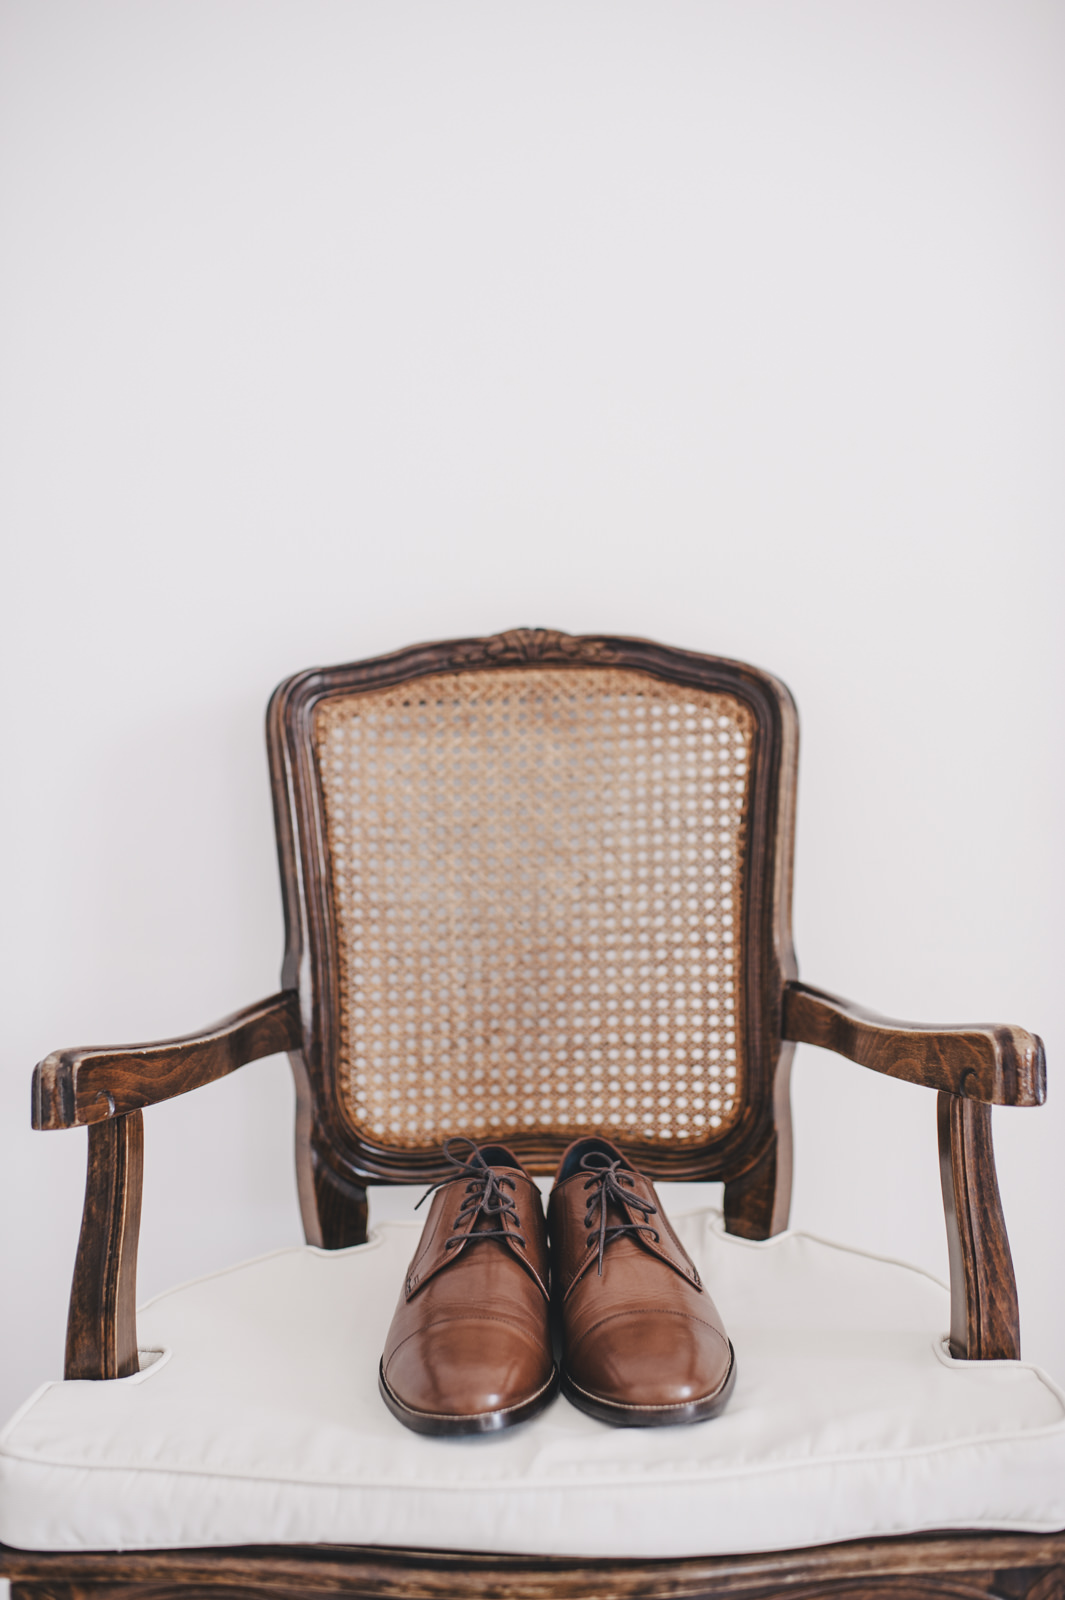 groom's shoes on a chair